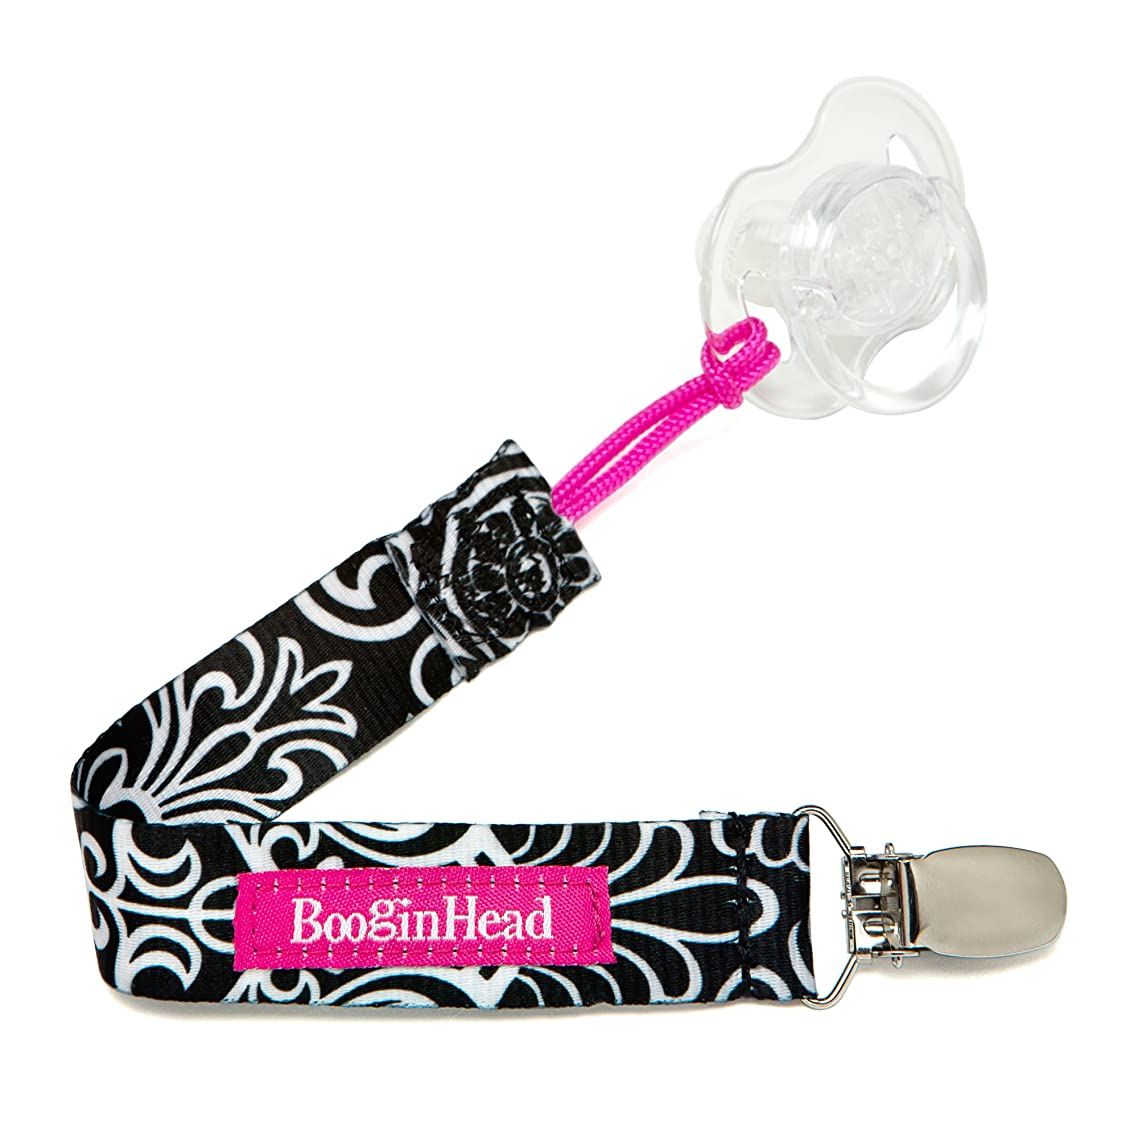 BooginHead Baby Newborn PaciGrip Pacifier Clip, Holder, Toy, Teether, Soothie, Universal Loop Girl, Black Flourish, Black and Pink